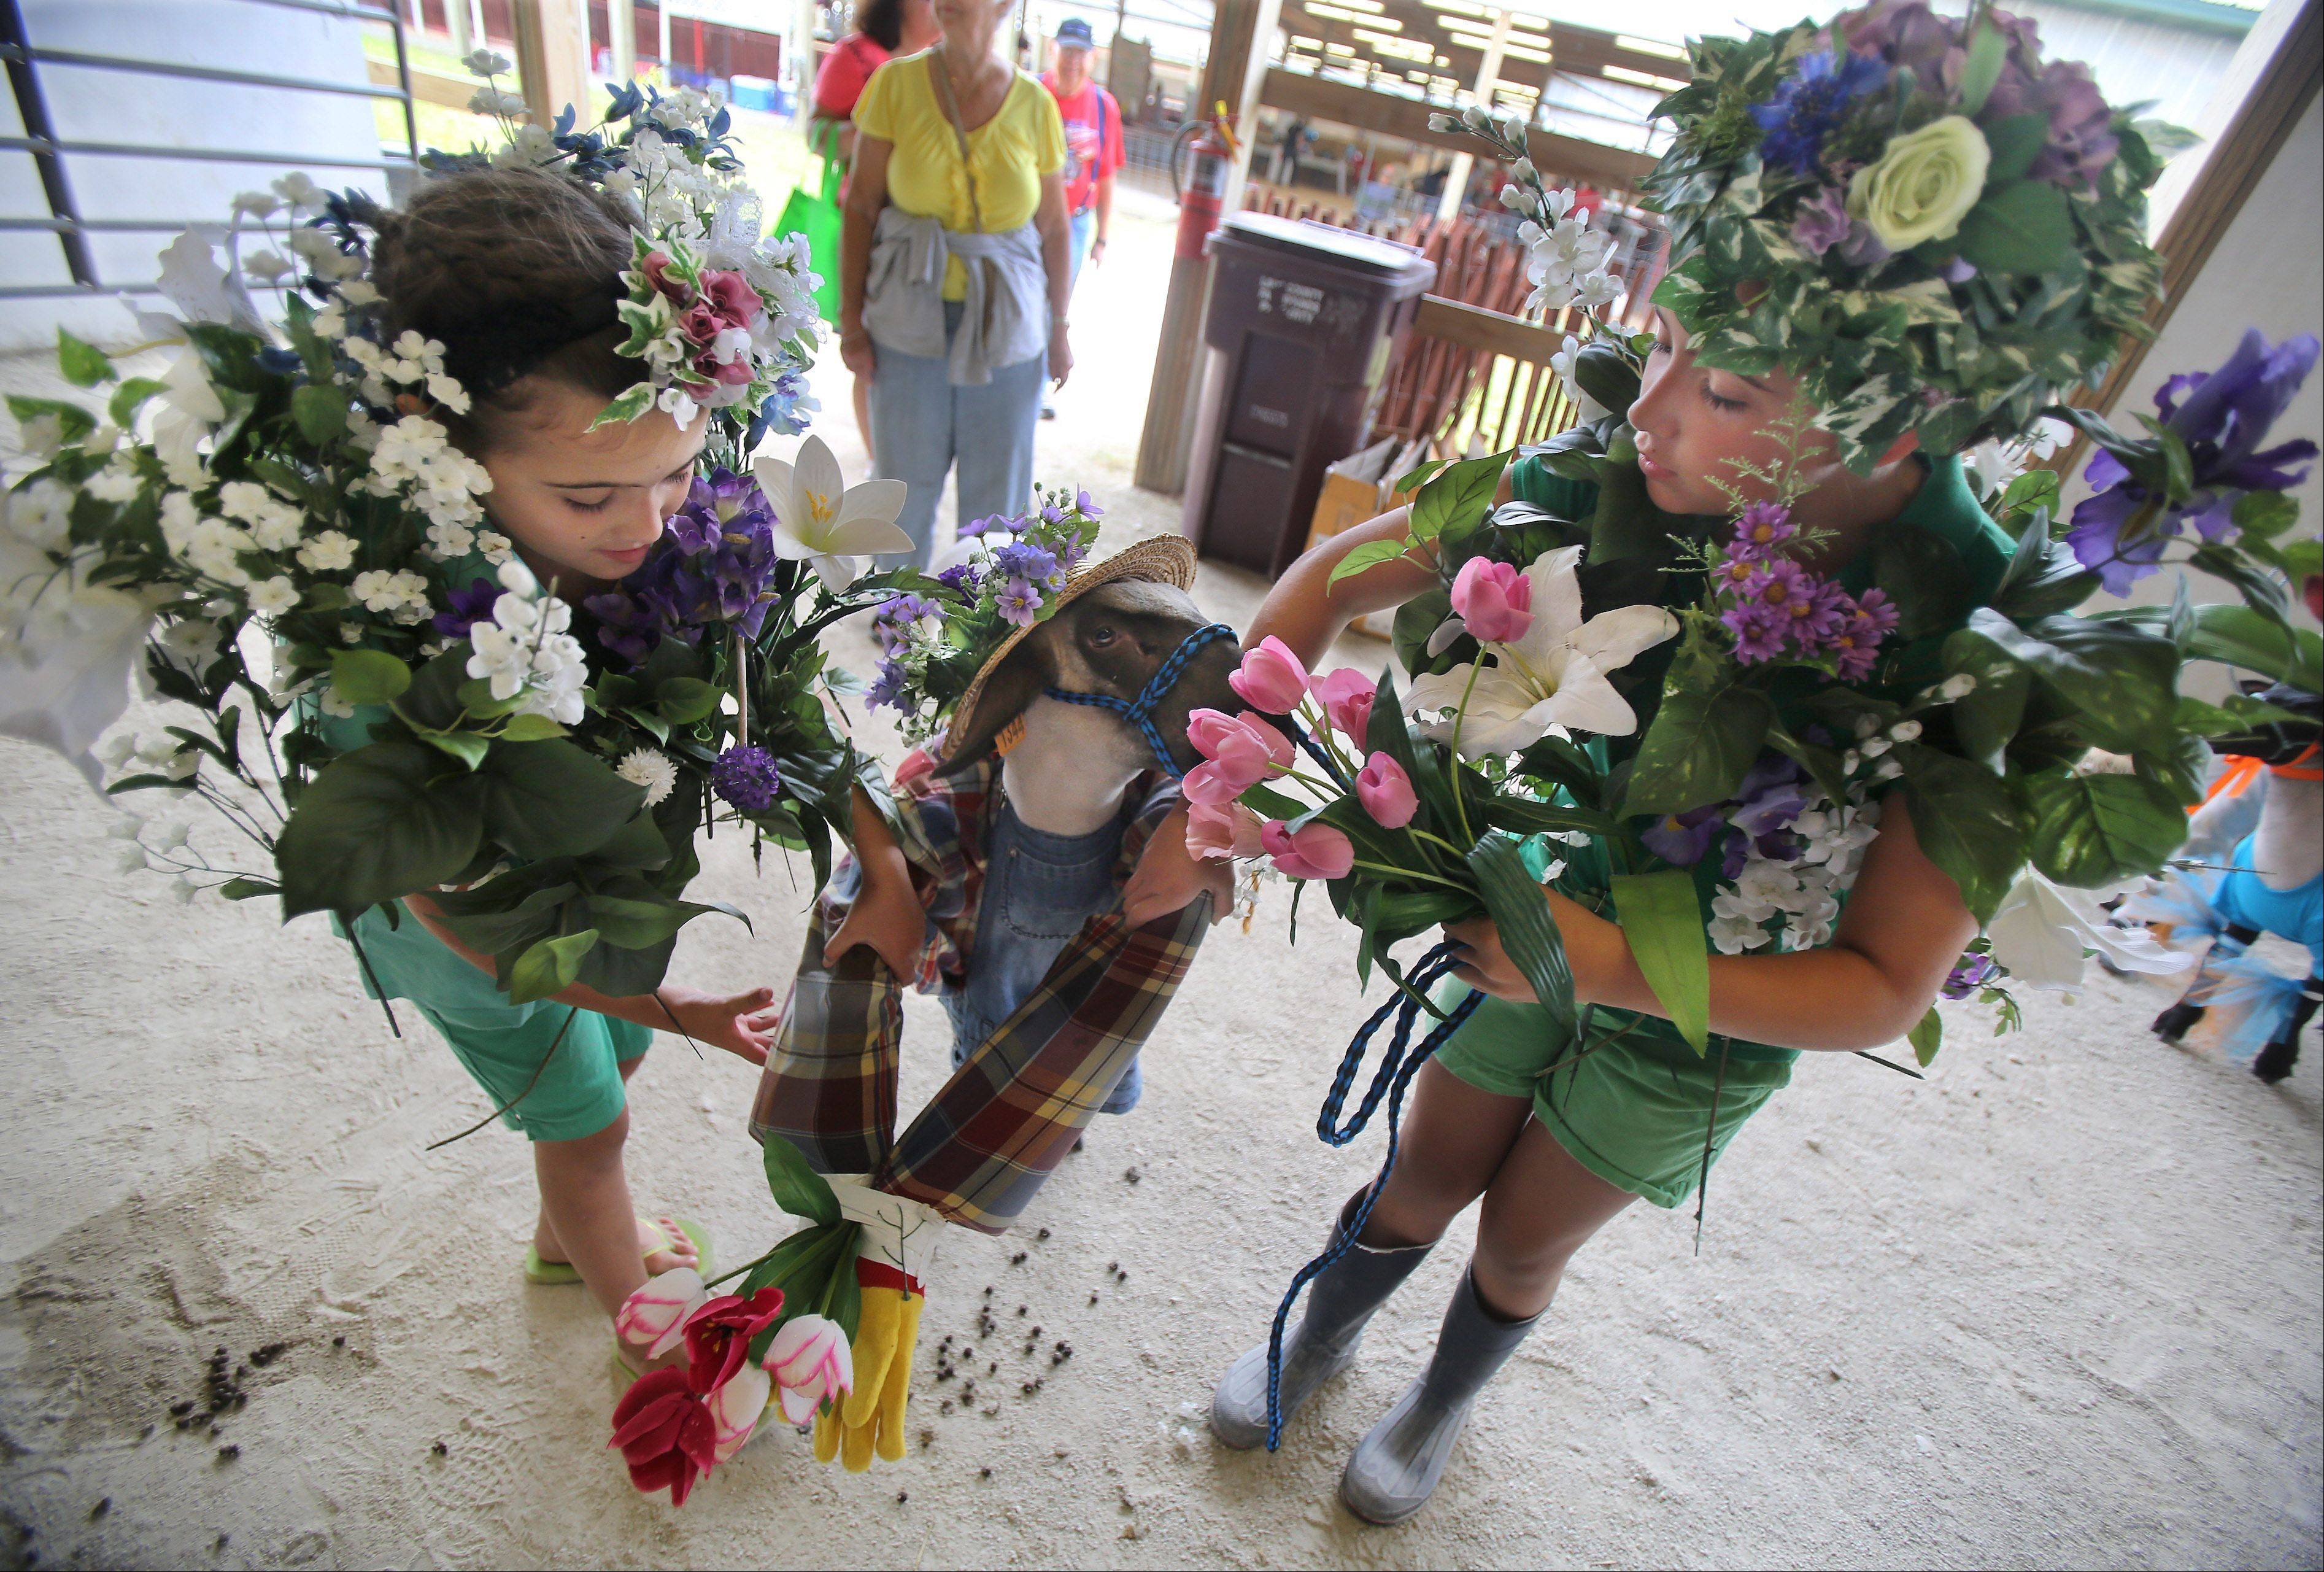 Kendra Dilg, 10, of Pleasant Prairie, Wis., right, tries to keep her lamb from eating her flowers as she waits with her sister, Alaina, 8, to enter the Livestock Costume Contest during the Lake County Fair Thursday at the Lake County Fairgrounds in Grayslake.